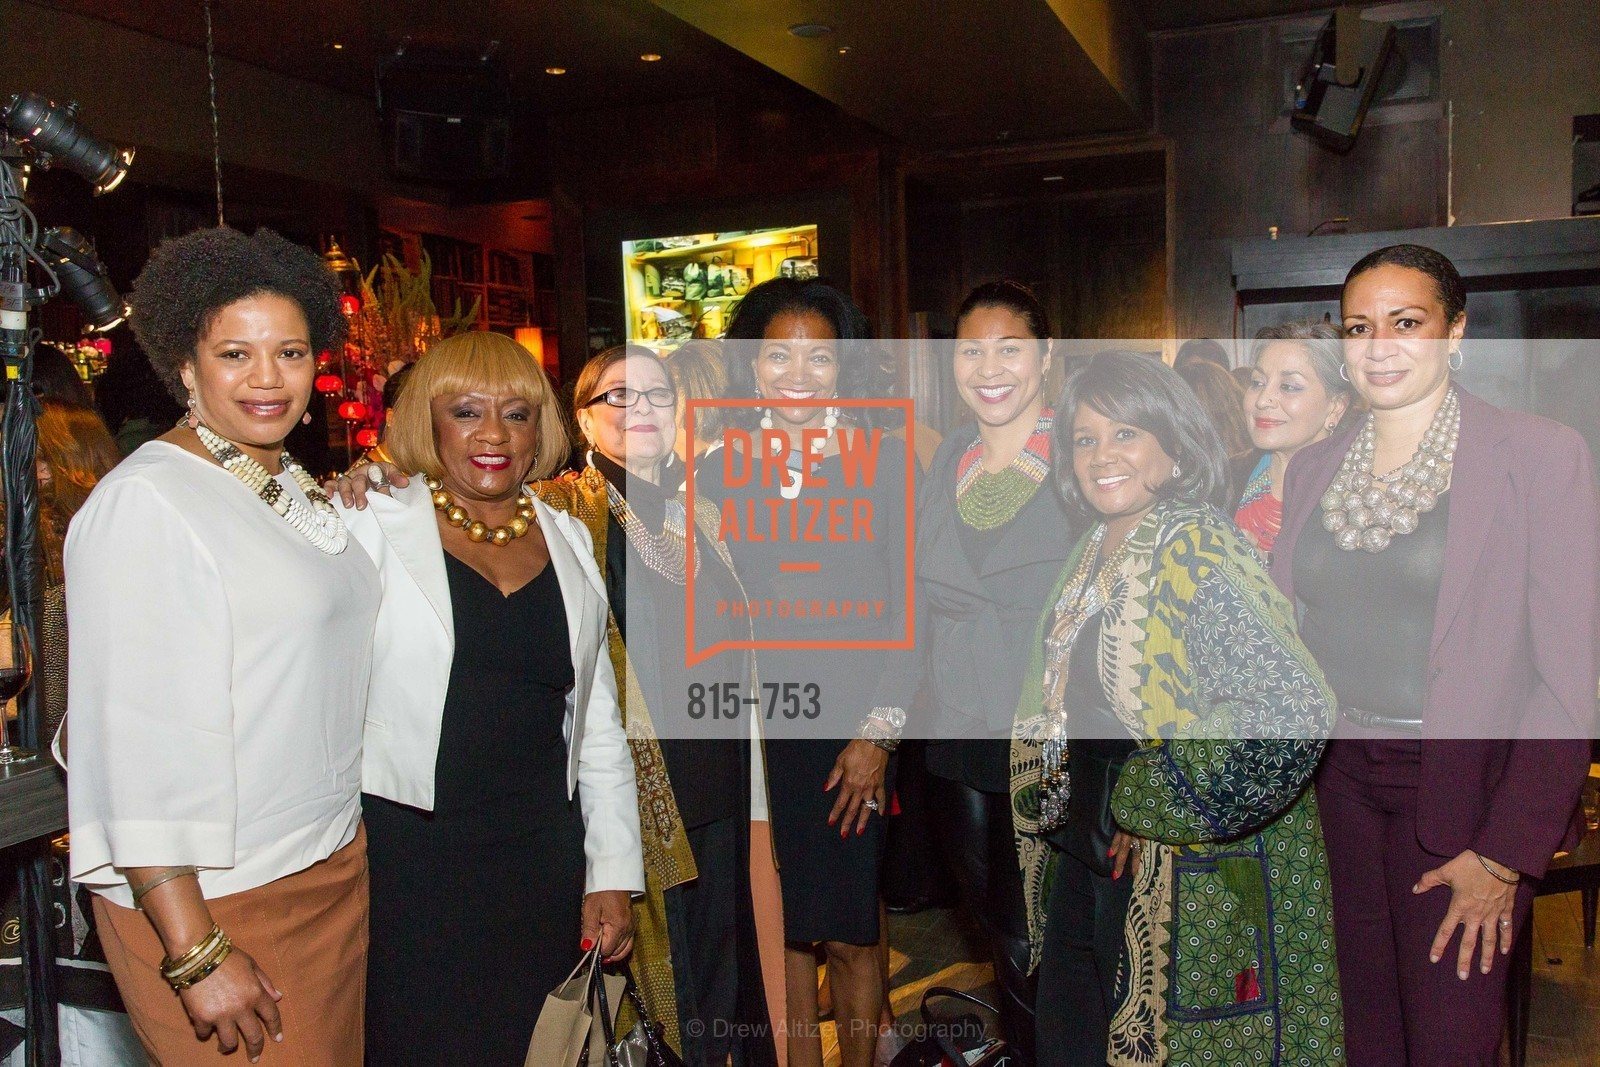 Yvette Hollingsworth, Brenda Wright, Masha Archer, Denise Bradley Tyson, London Breed, Carolyn Tyler, Dierdre Levington, INSPIRED LUXE Launch Party Hosted by Denise Bradley Tyson, US, May 28th, 2015,Drew Altizer, Drew Altizer Photography, full-service agency, private events, San Francisco photographer, photographer california